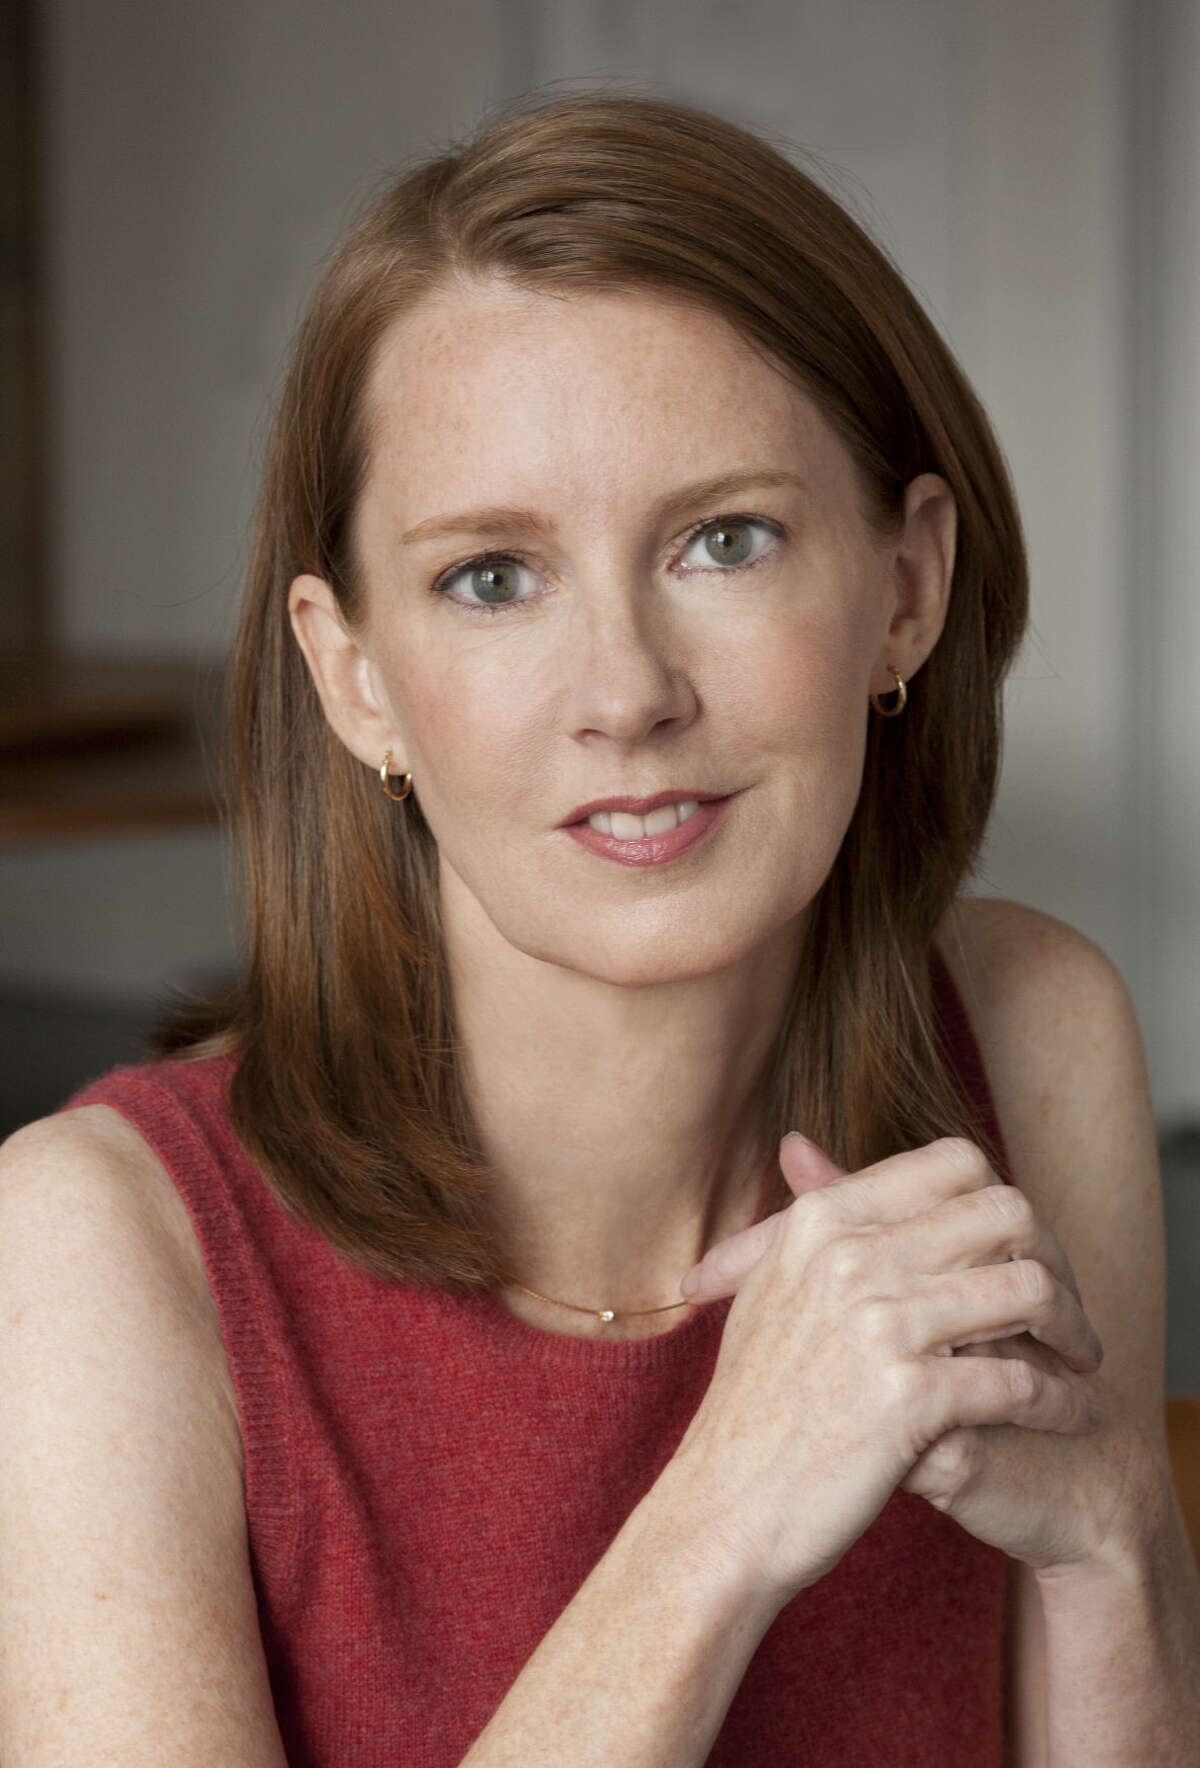 Bestselling author Gretchen Rubin visits Wilton Library on Thursday, Jan. 28, from 7-8:30 p.m. to discuss her book,